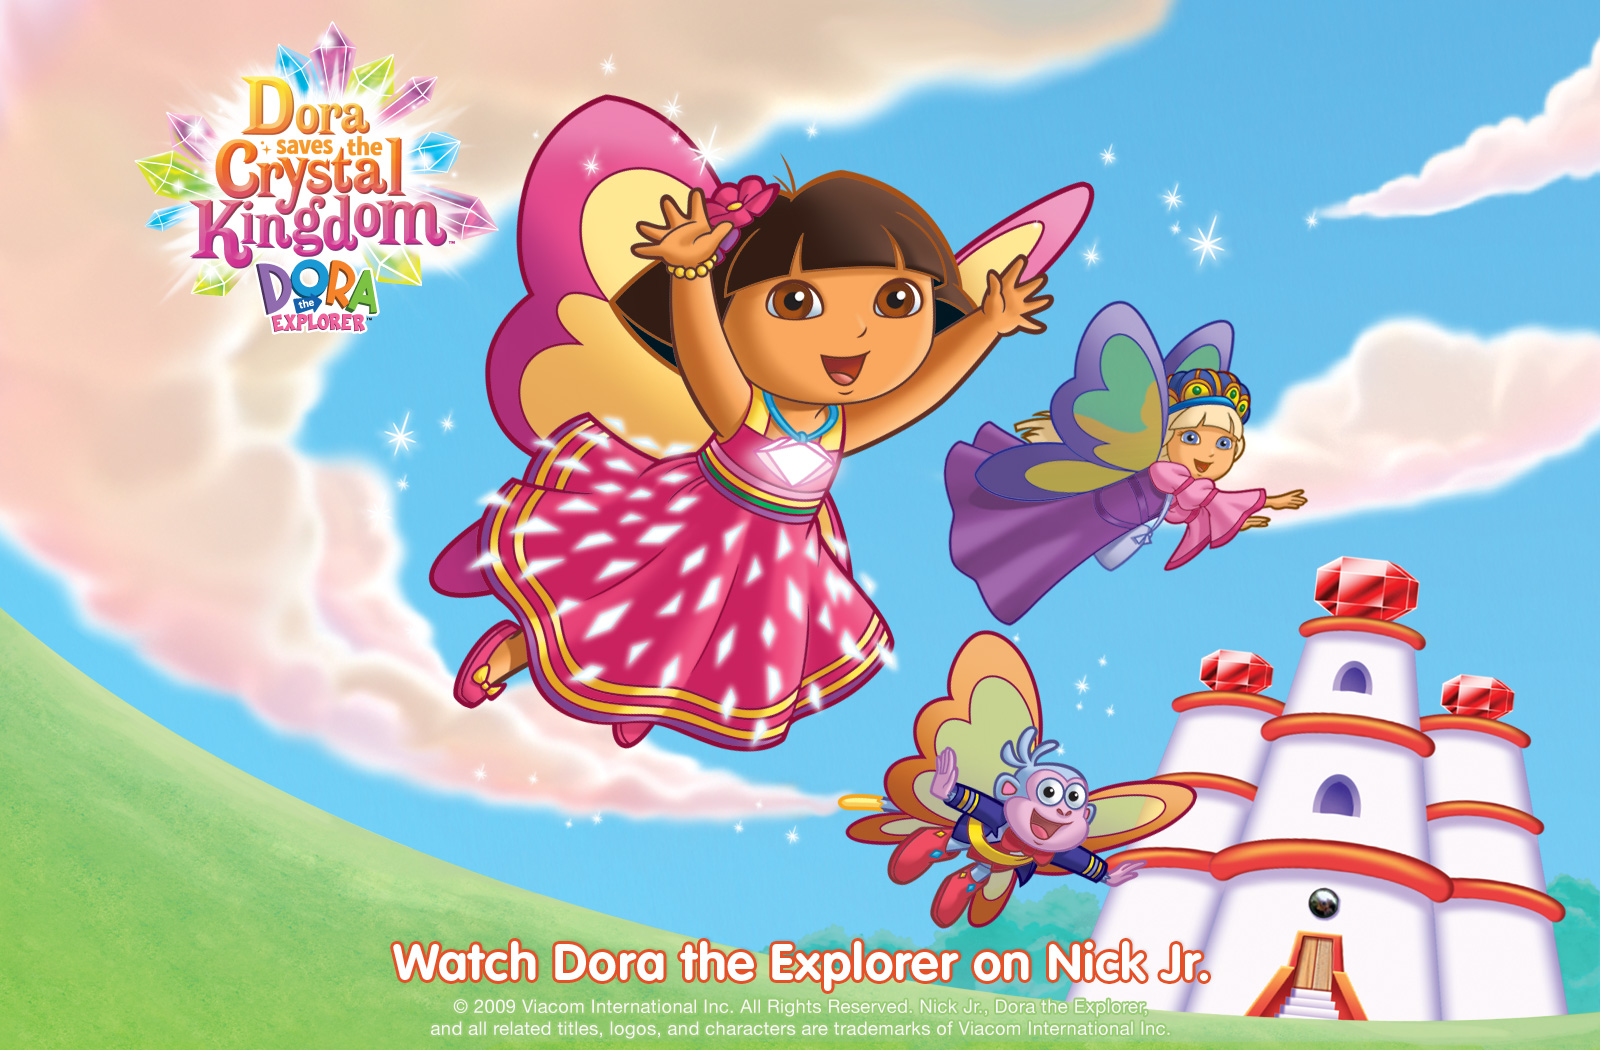 Dora wallpaper 48 wallpapers hd wallpapers dora wallpaper 48 wallpapers voltagebd Image collections